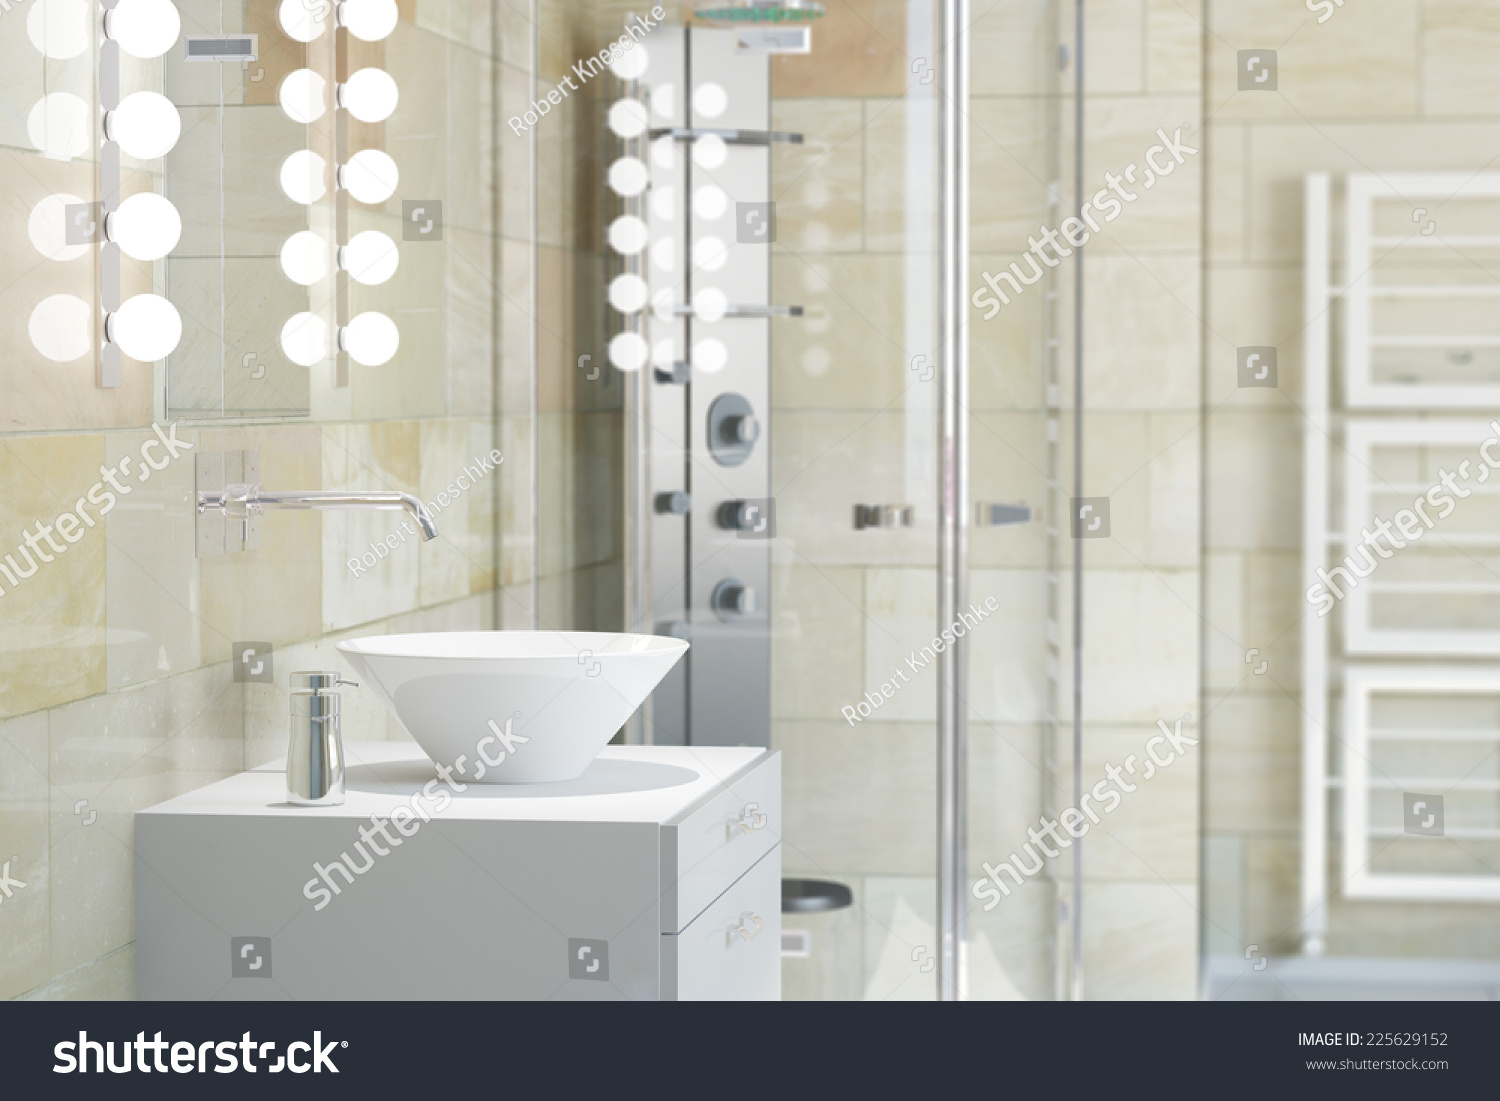 White Sink Bathroom Shower Terracotta Tiles Stock Illustration ...